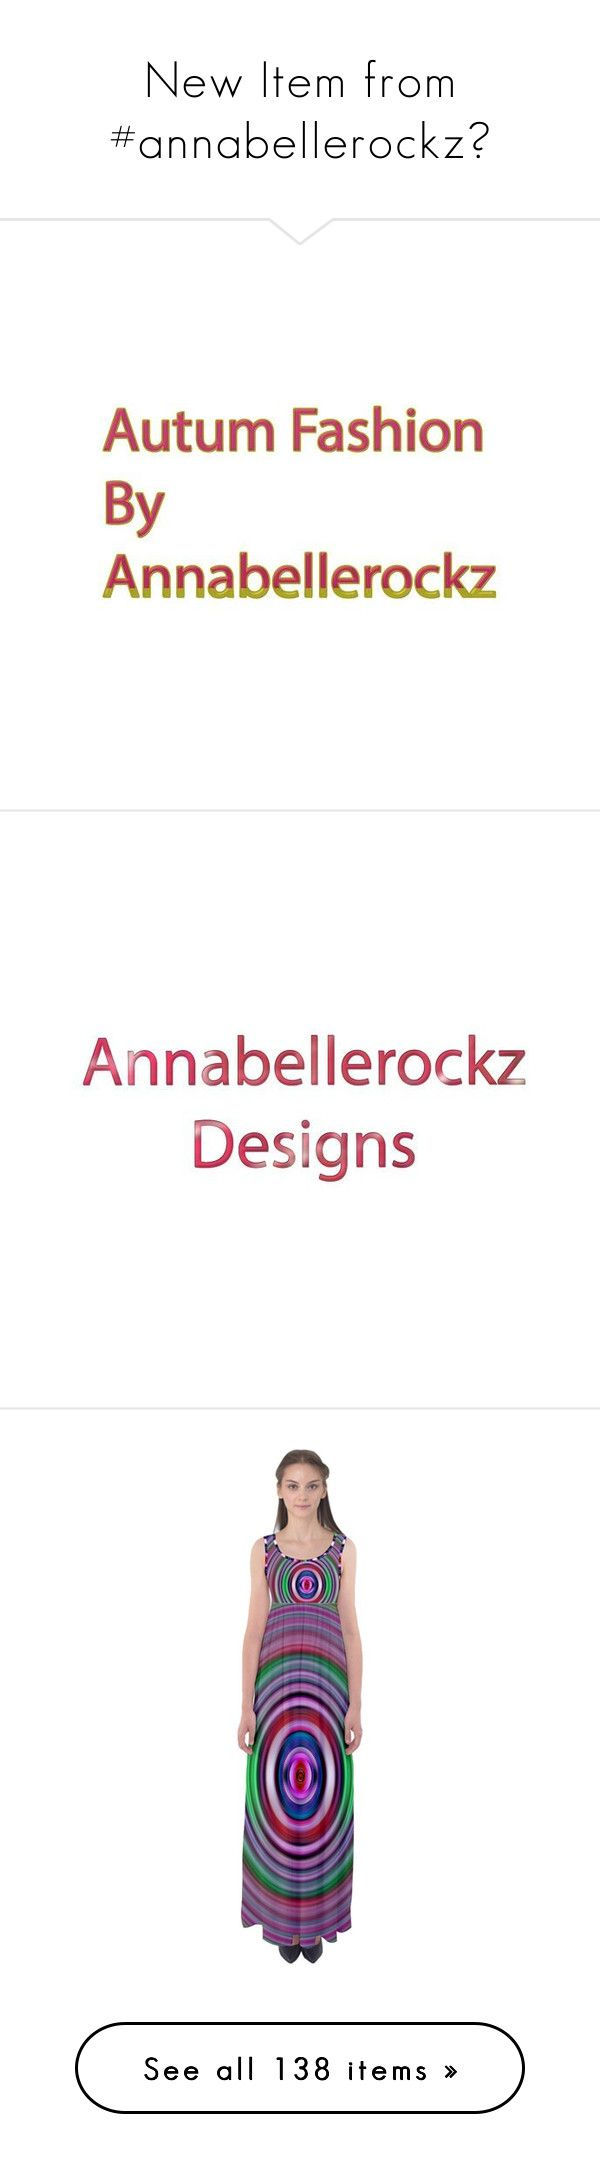 """""""New Item from #annabellerockz😀"""" by ragnh-mjos ❤ liked on Polyvore featuring items, annabellerockz, dresses, tall dresses, tall length maxi dresses, short dresses, stretch maxi dress, maxi length dresses, empire waist dresses and purple maxi dress"""